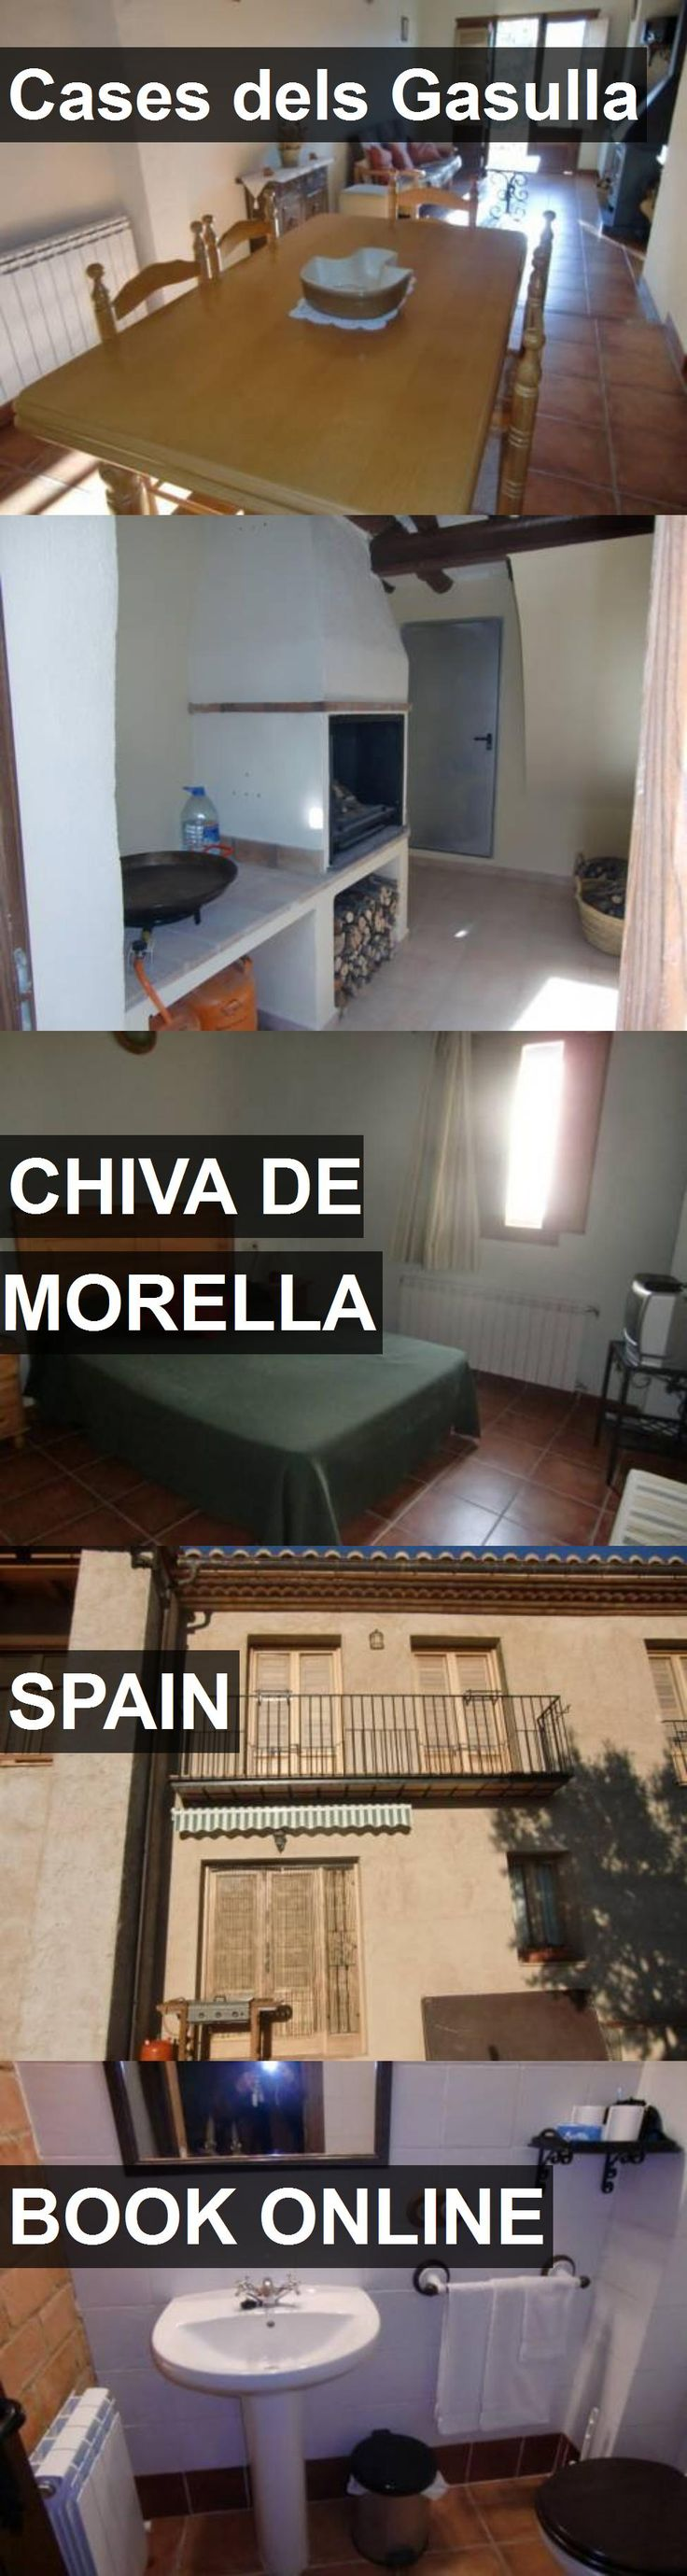 Hotel Cases dels Gasulla in Chiva de Morella, Spain. For more information, photos, reviews and best prices please follow the link. #Spain #ChivadeMorella #CasesdelsGasulla #hotel #travel #vacation